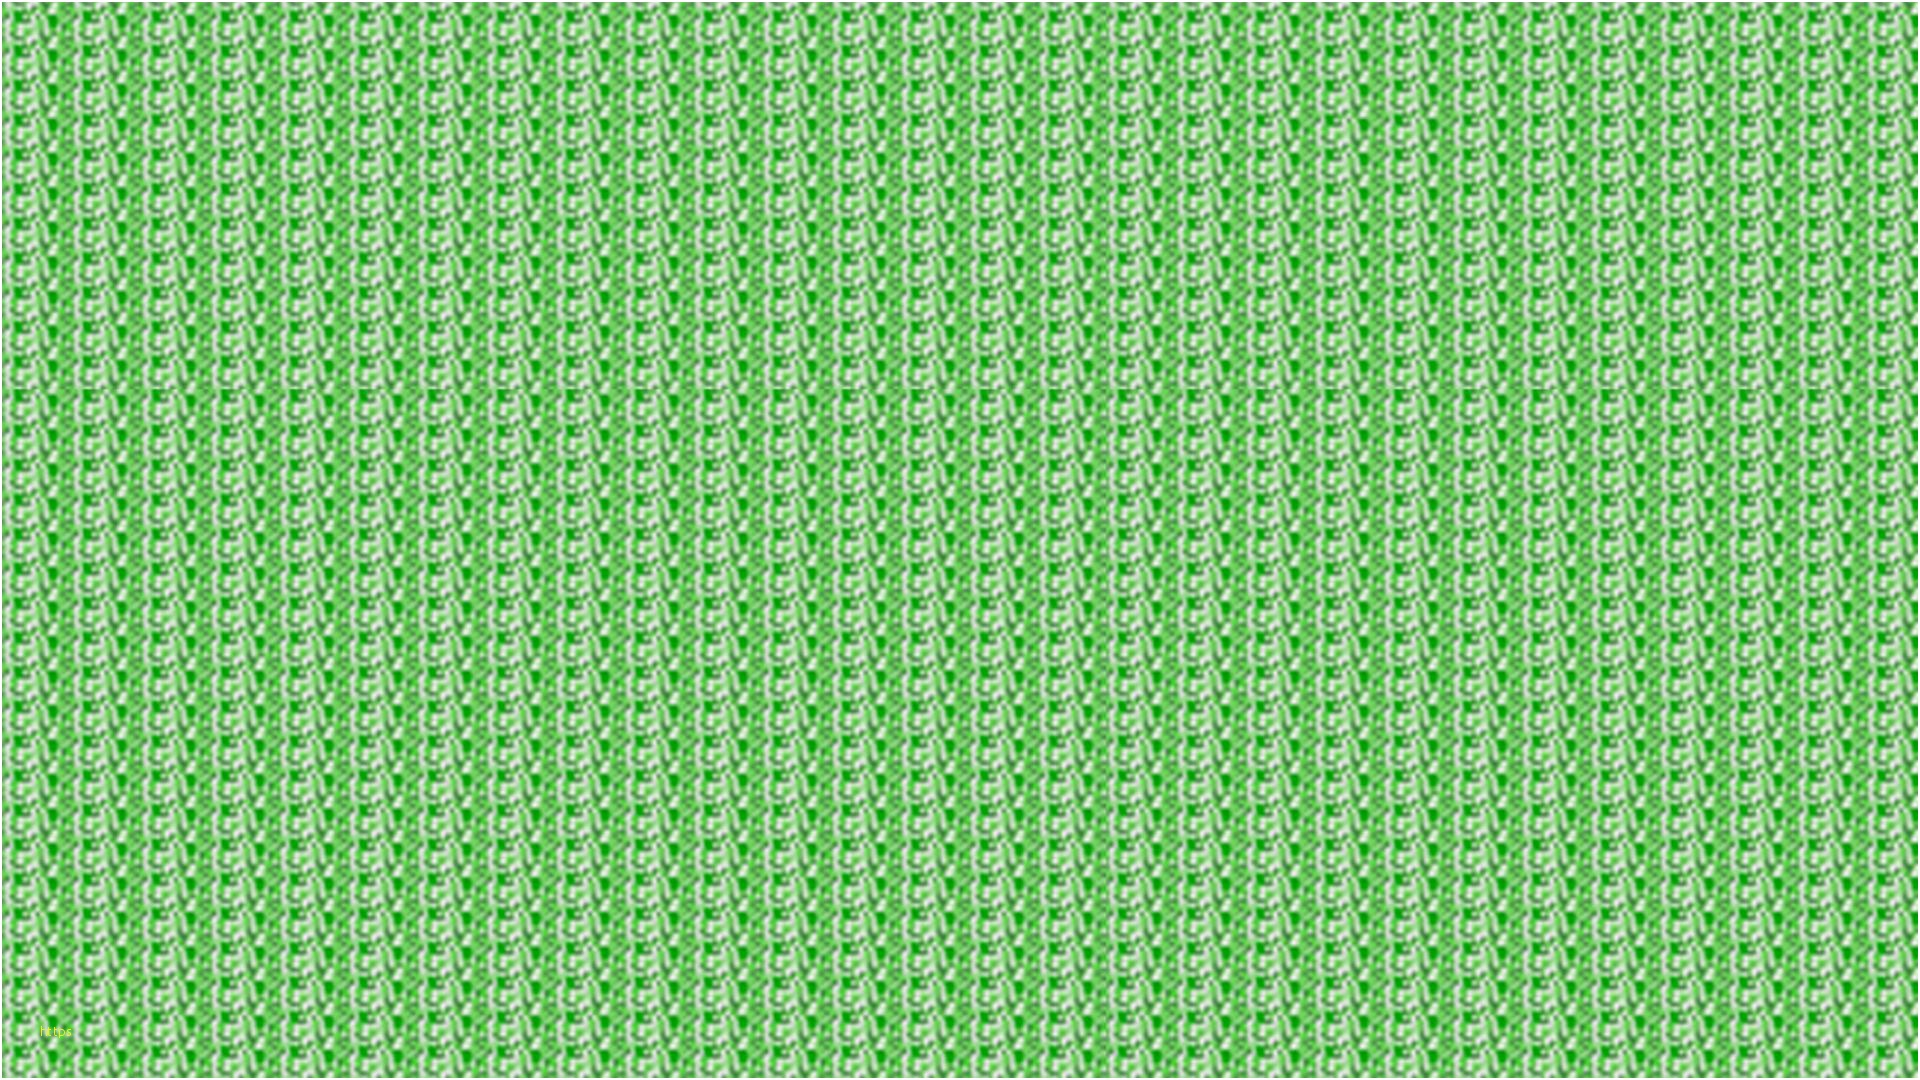 Minecraft Wallpaper Creeper Posted By John Thompson